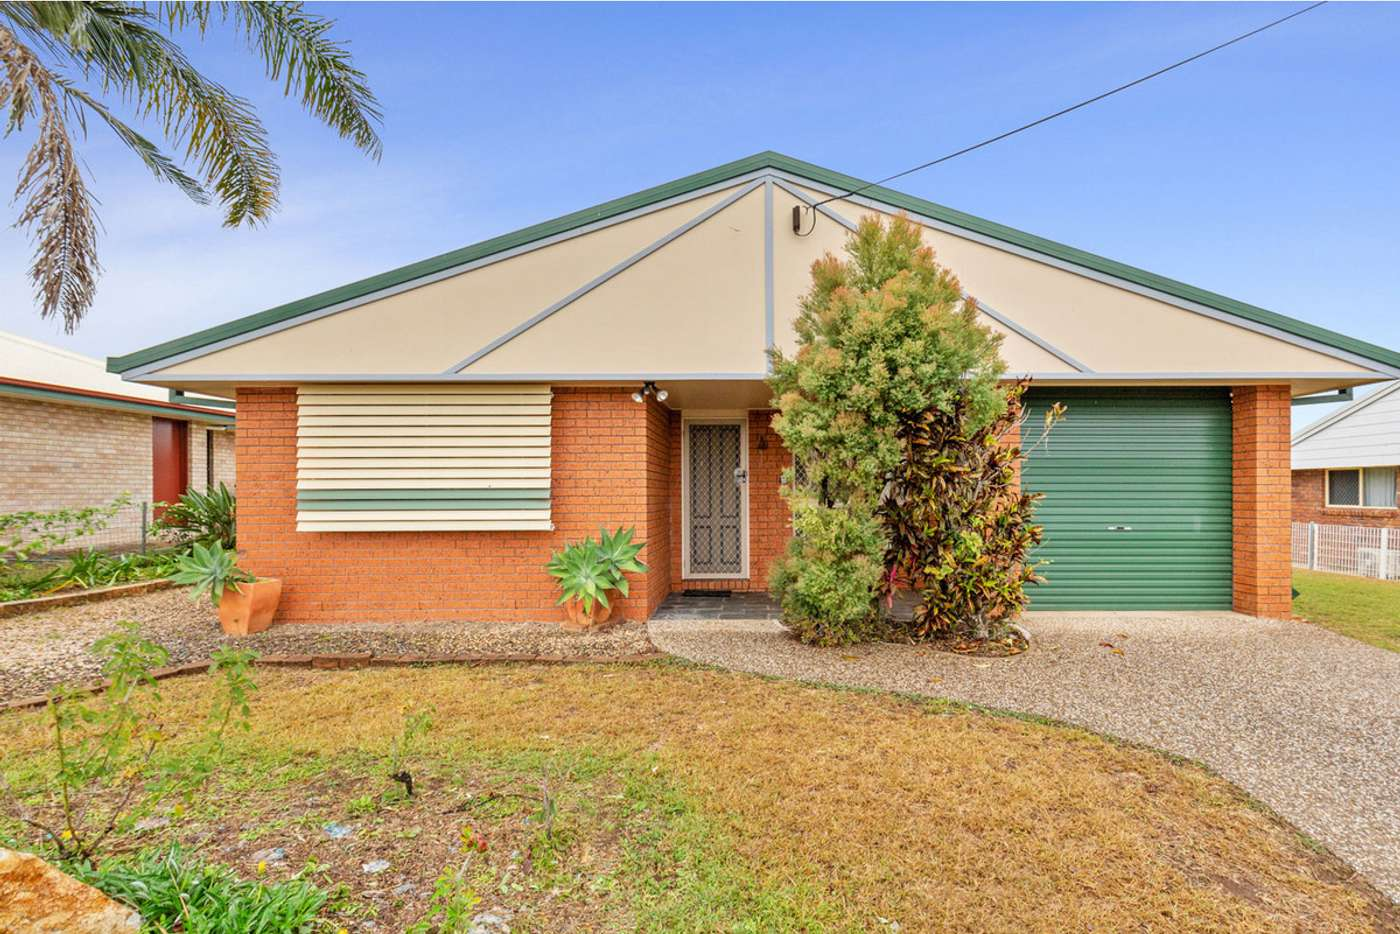 Main view of Homely house listing, 404 Farm Street, Norman Gardens QLD 4701